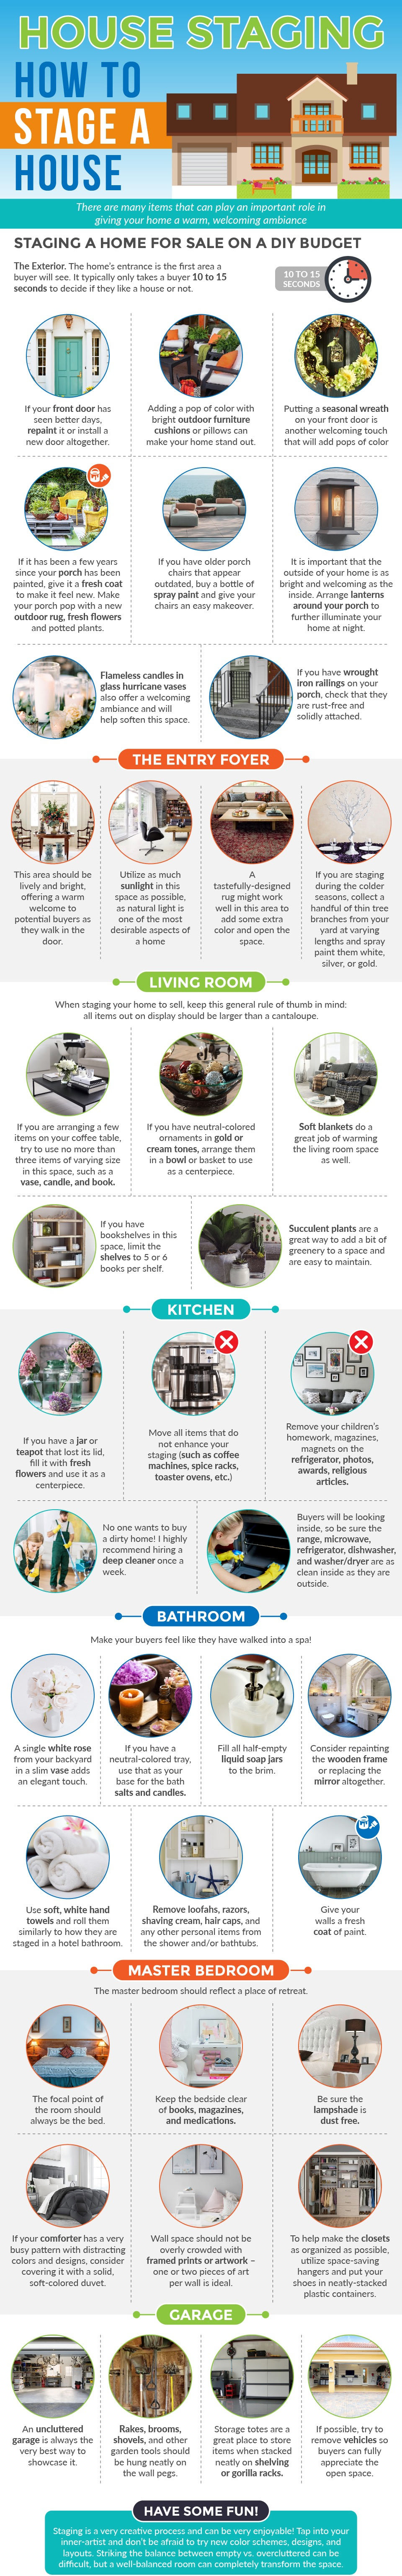 Home Staging.jpeg